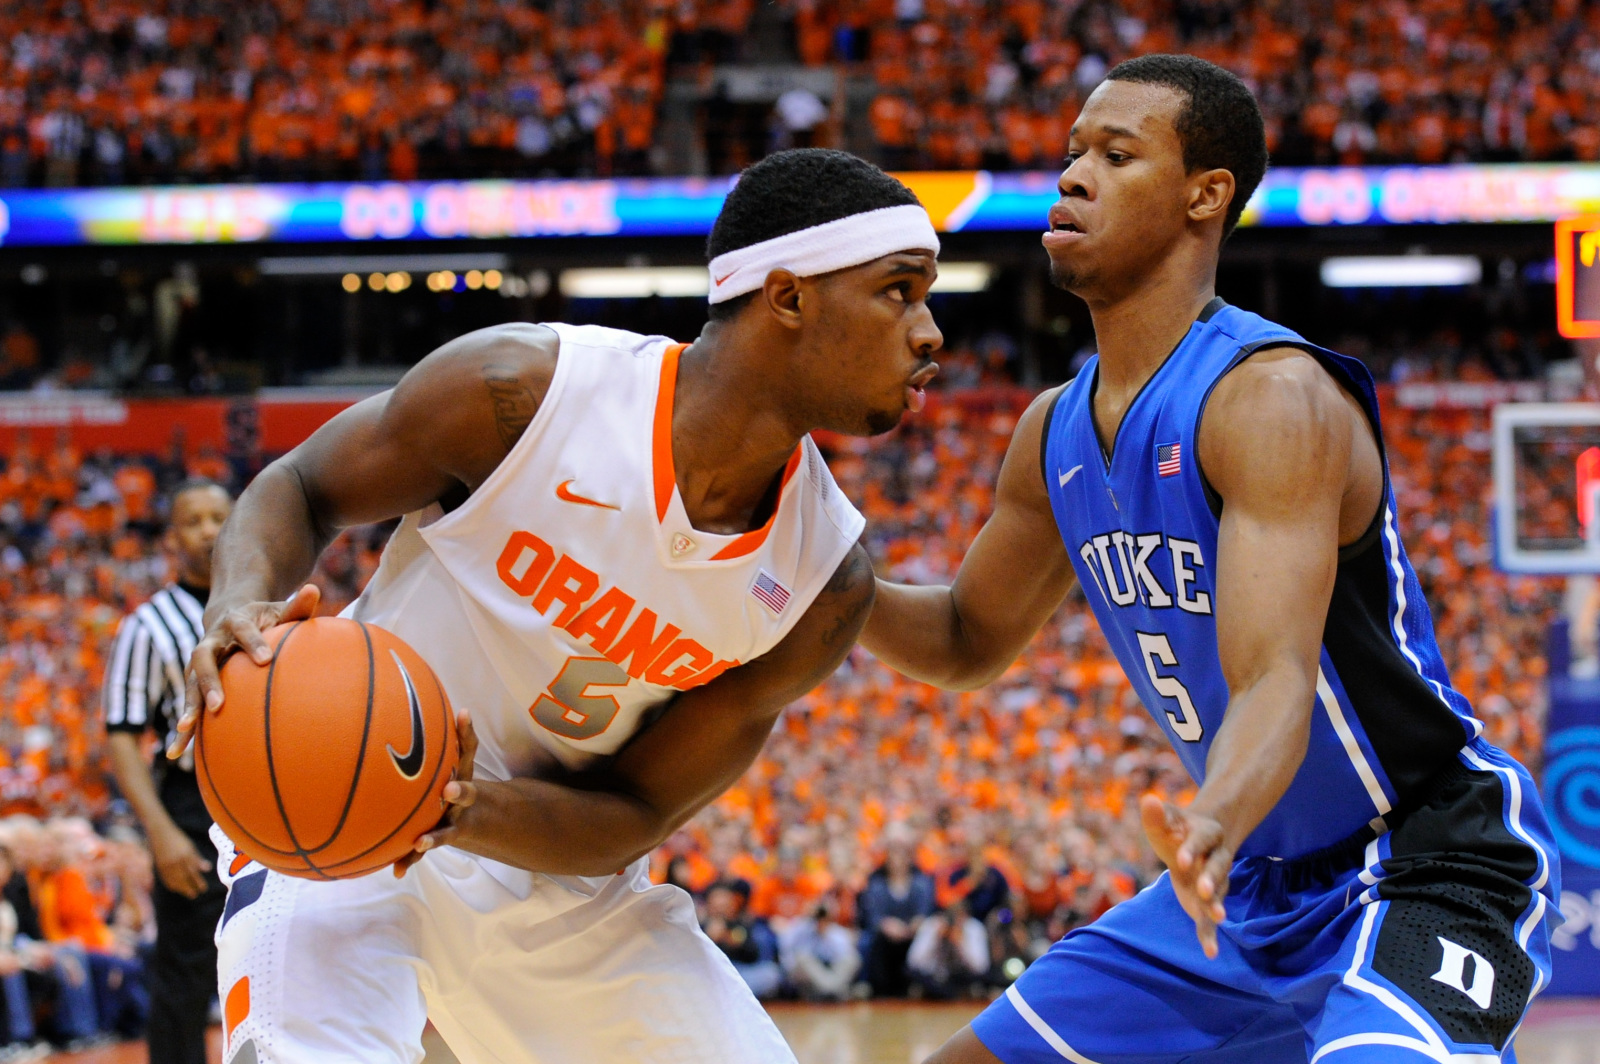 Syracuse Basketball Rewatch: Duke comes to the Dome for the first time